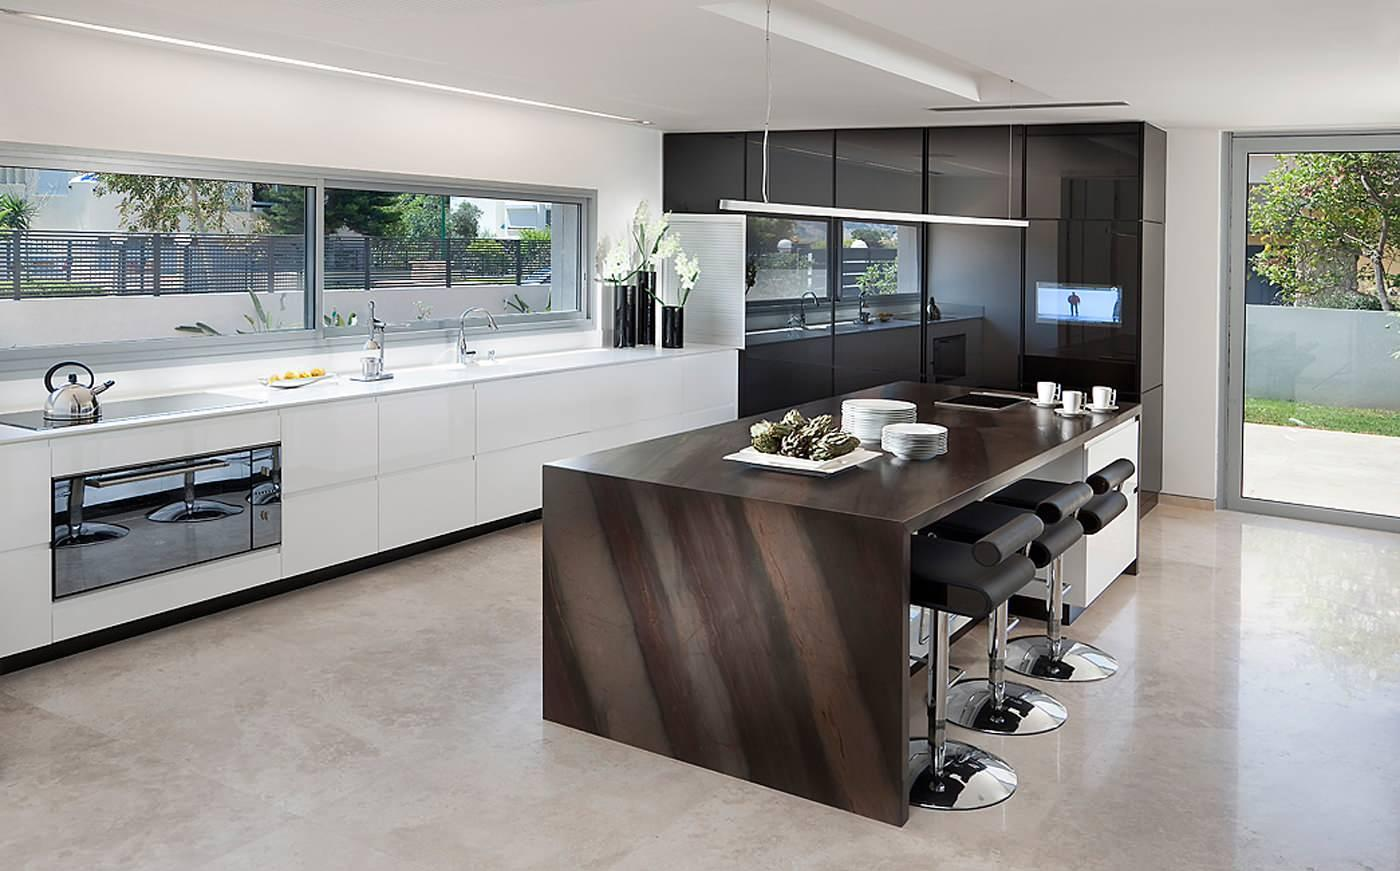 Best Kitchen Designs kitchen design ideas - android apps on google play